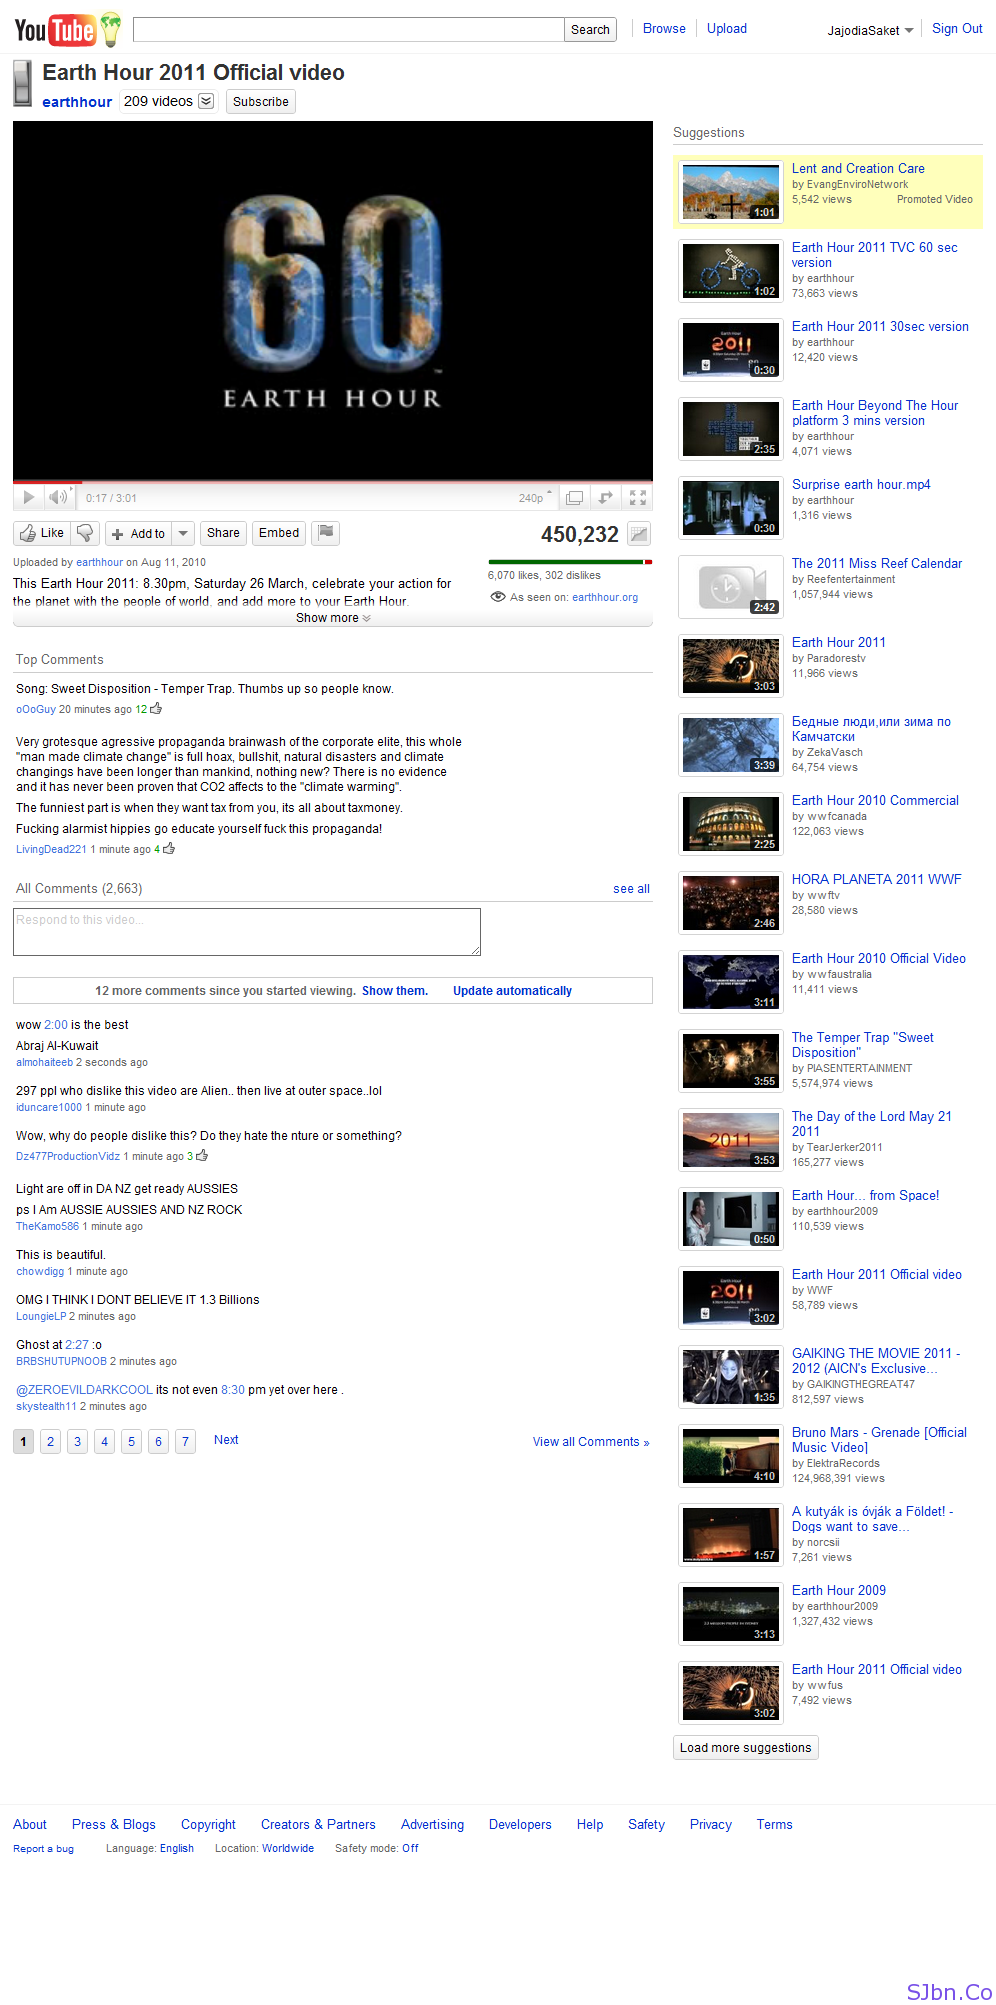 YouTube Earth Hour Light ON Video Page